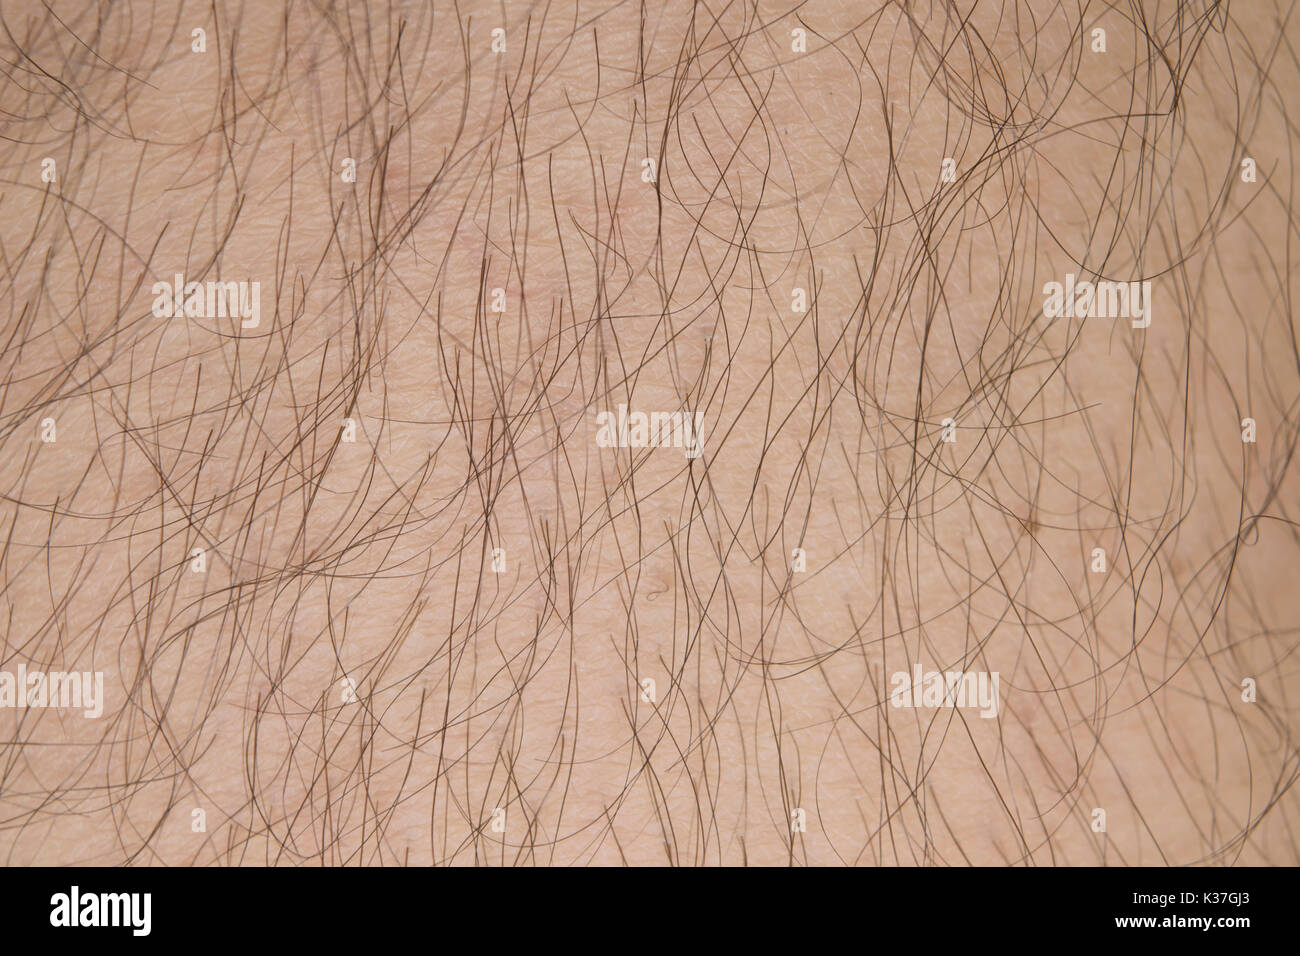 real human skin with hair texture background. - Stock Image